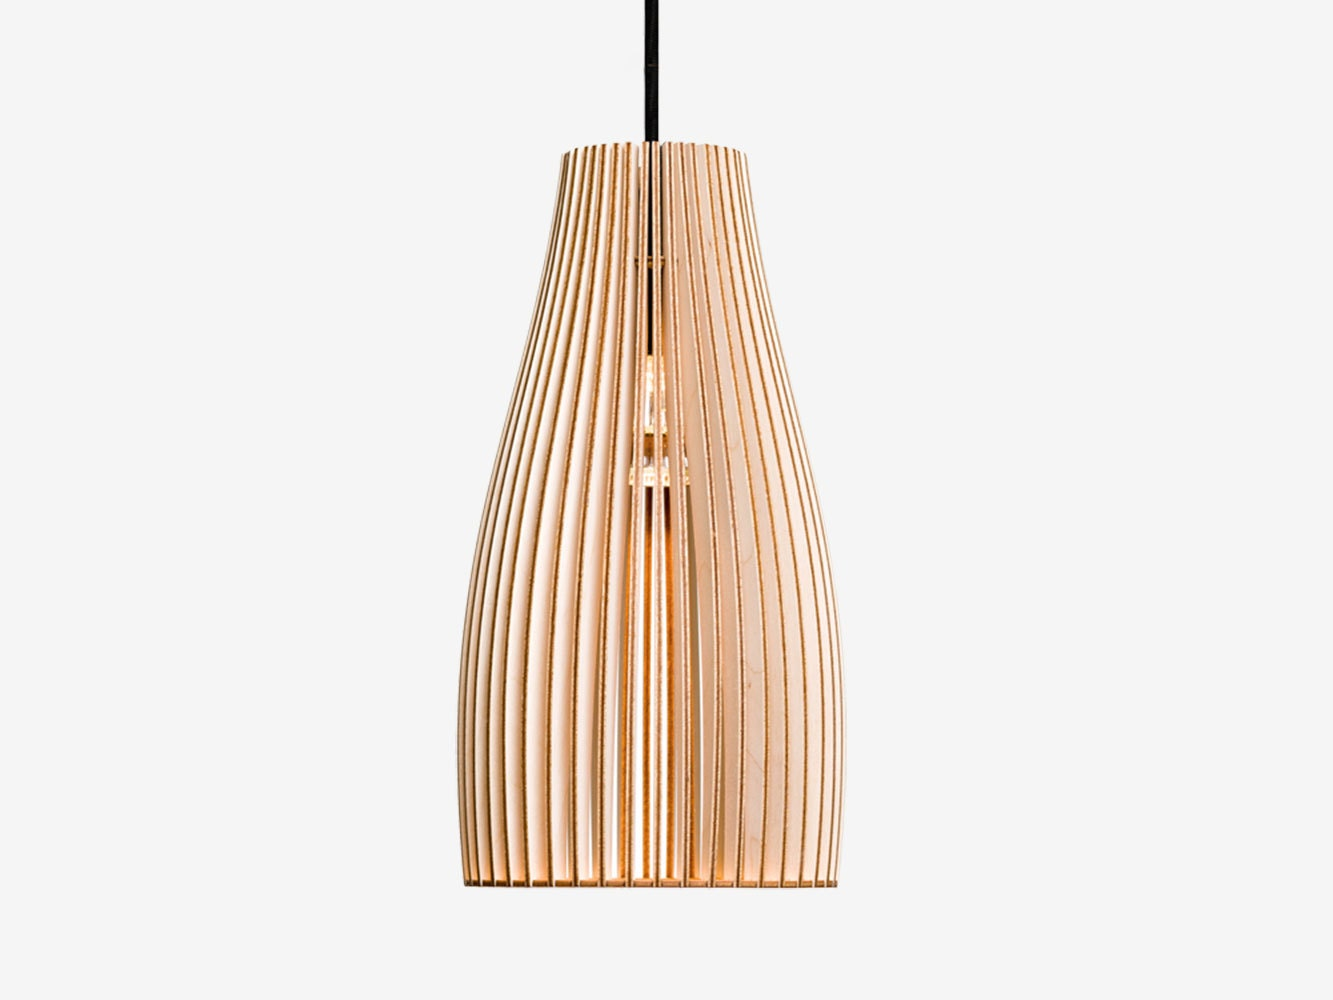 ena wooden pendant light wood lamp spot light wooden lampshade